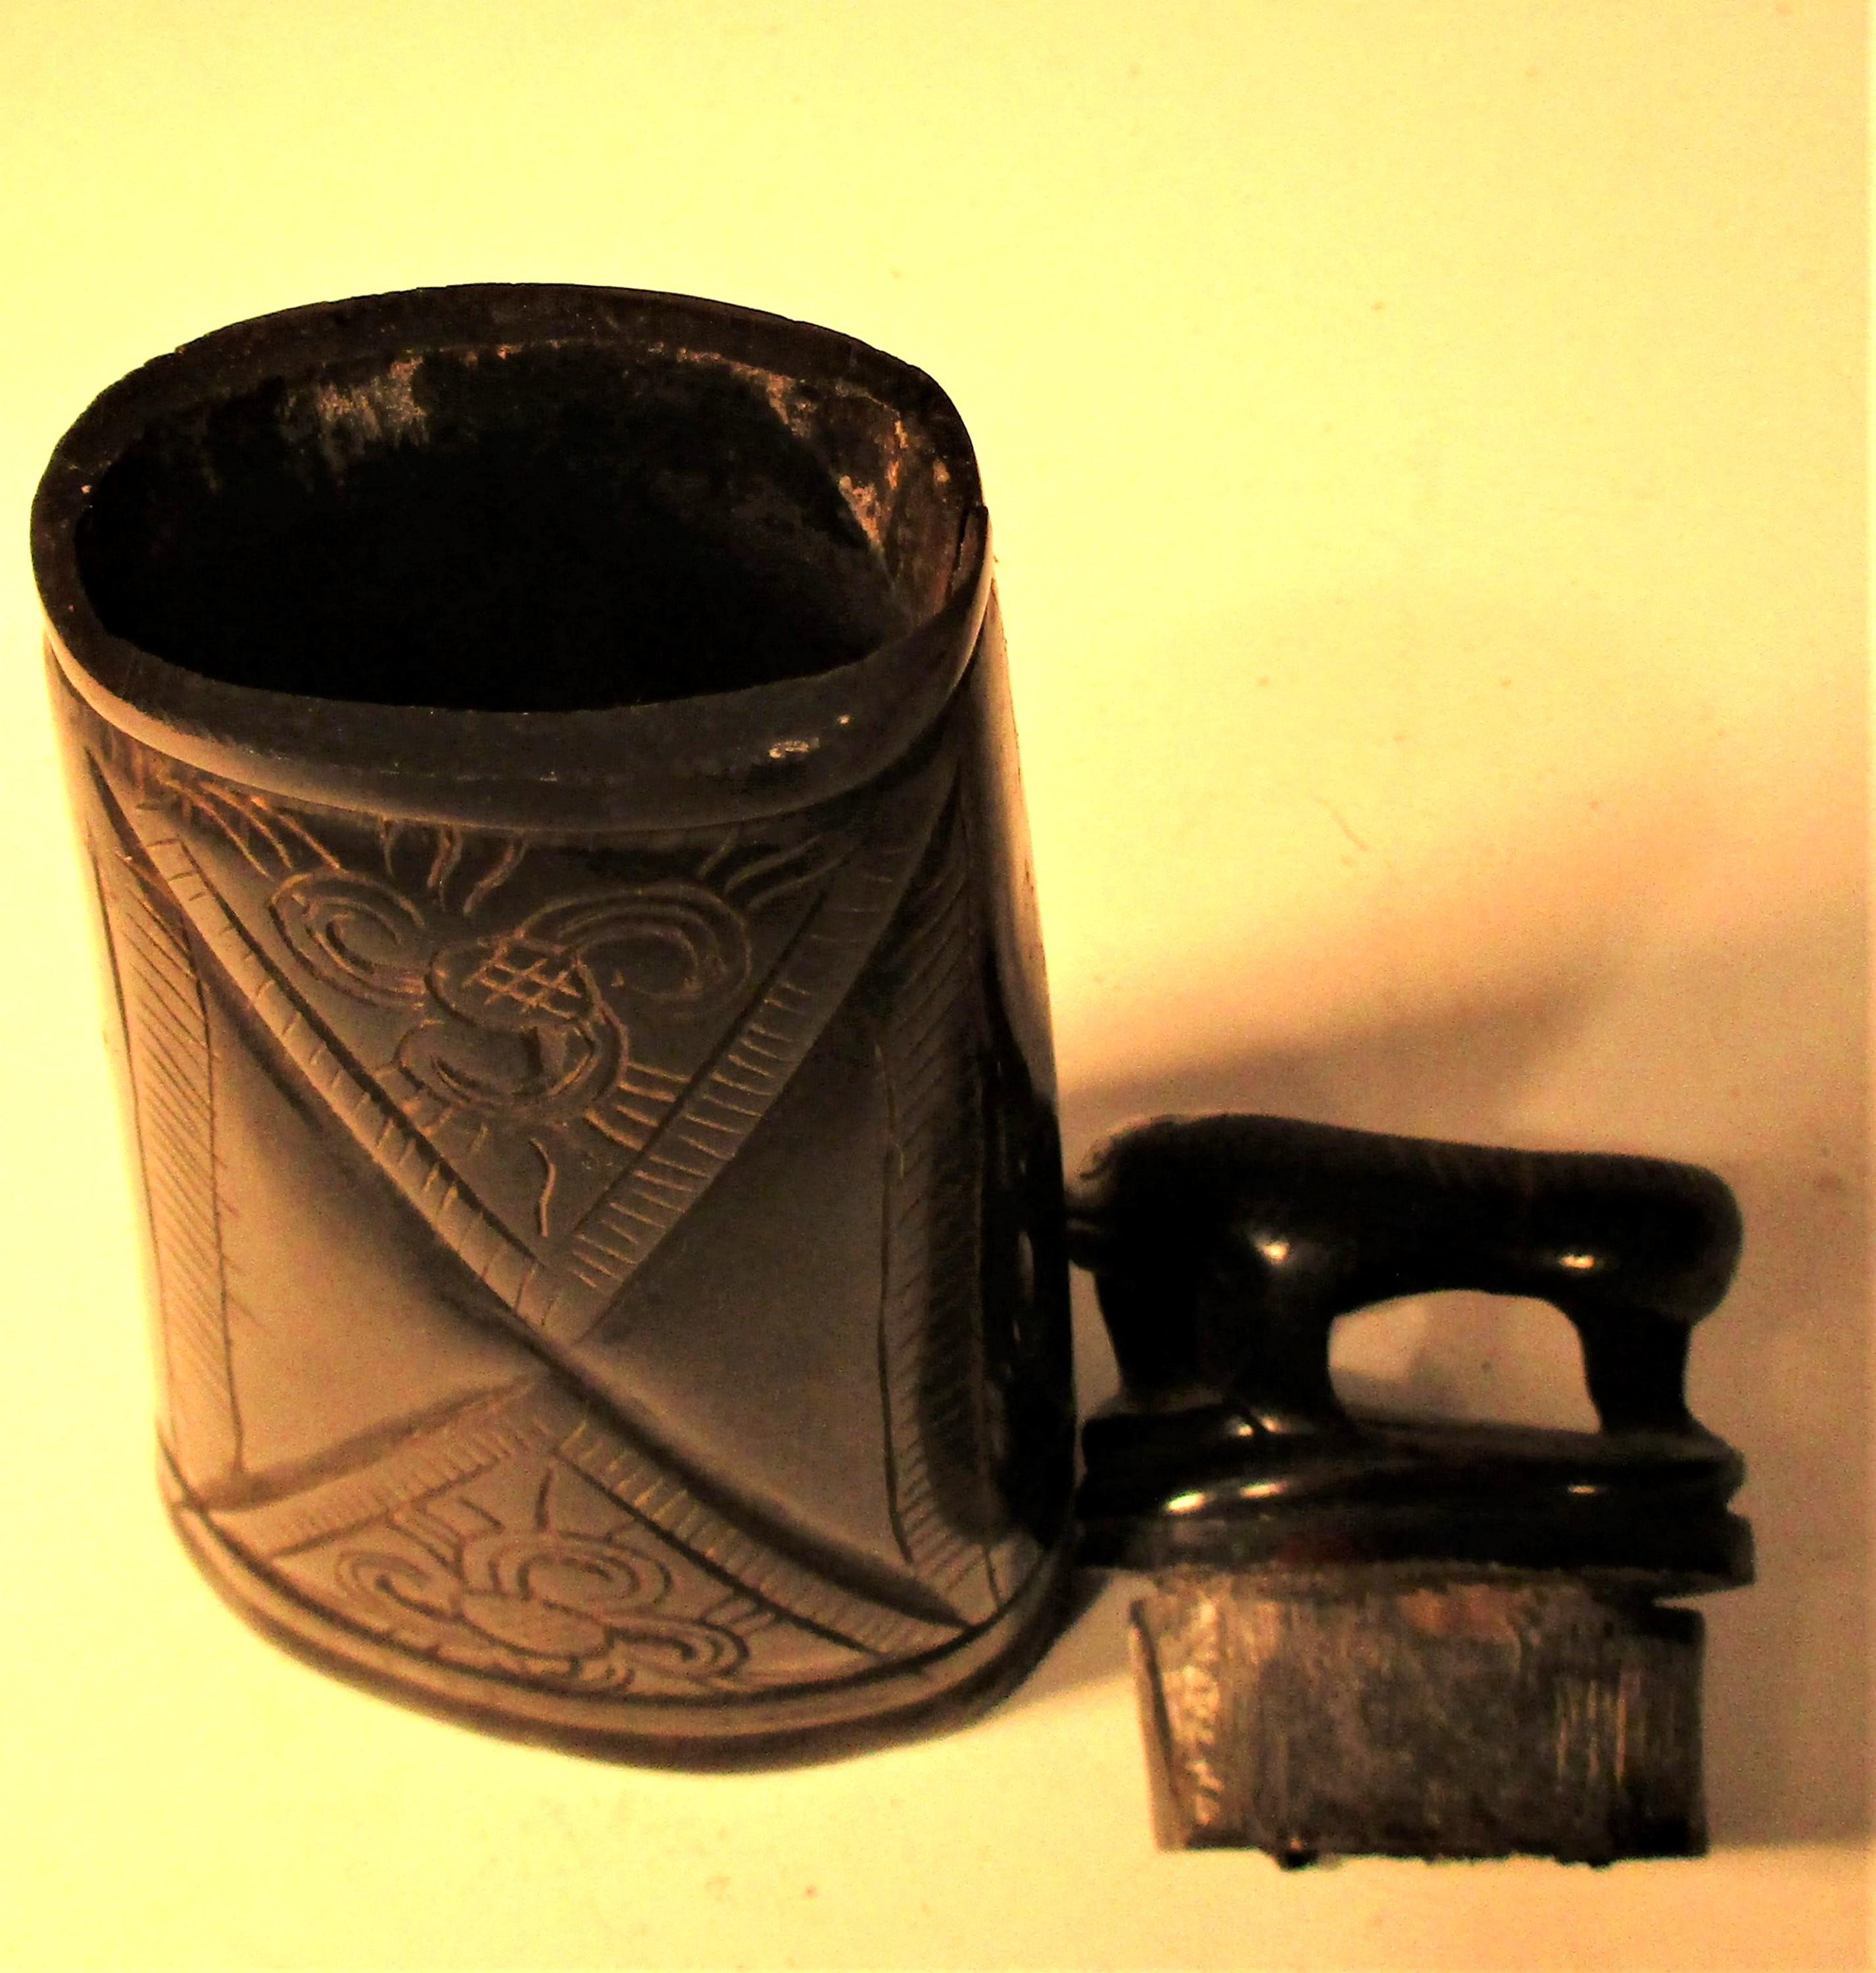 Horn ignition powder container, Torba Batak. Made from water buffalo horn.15 x 7cm. Late 20th c. - Image 3 of 4